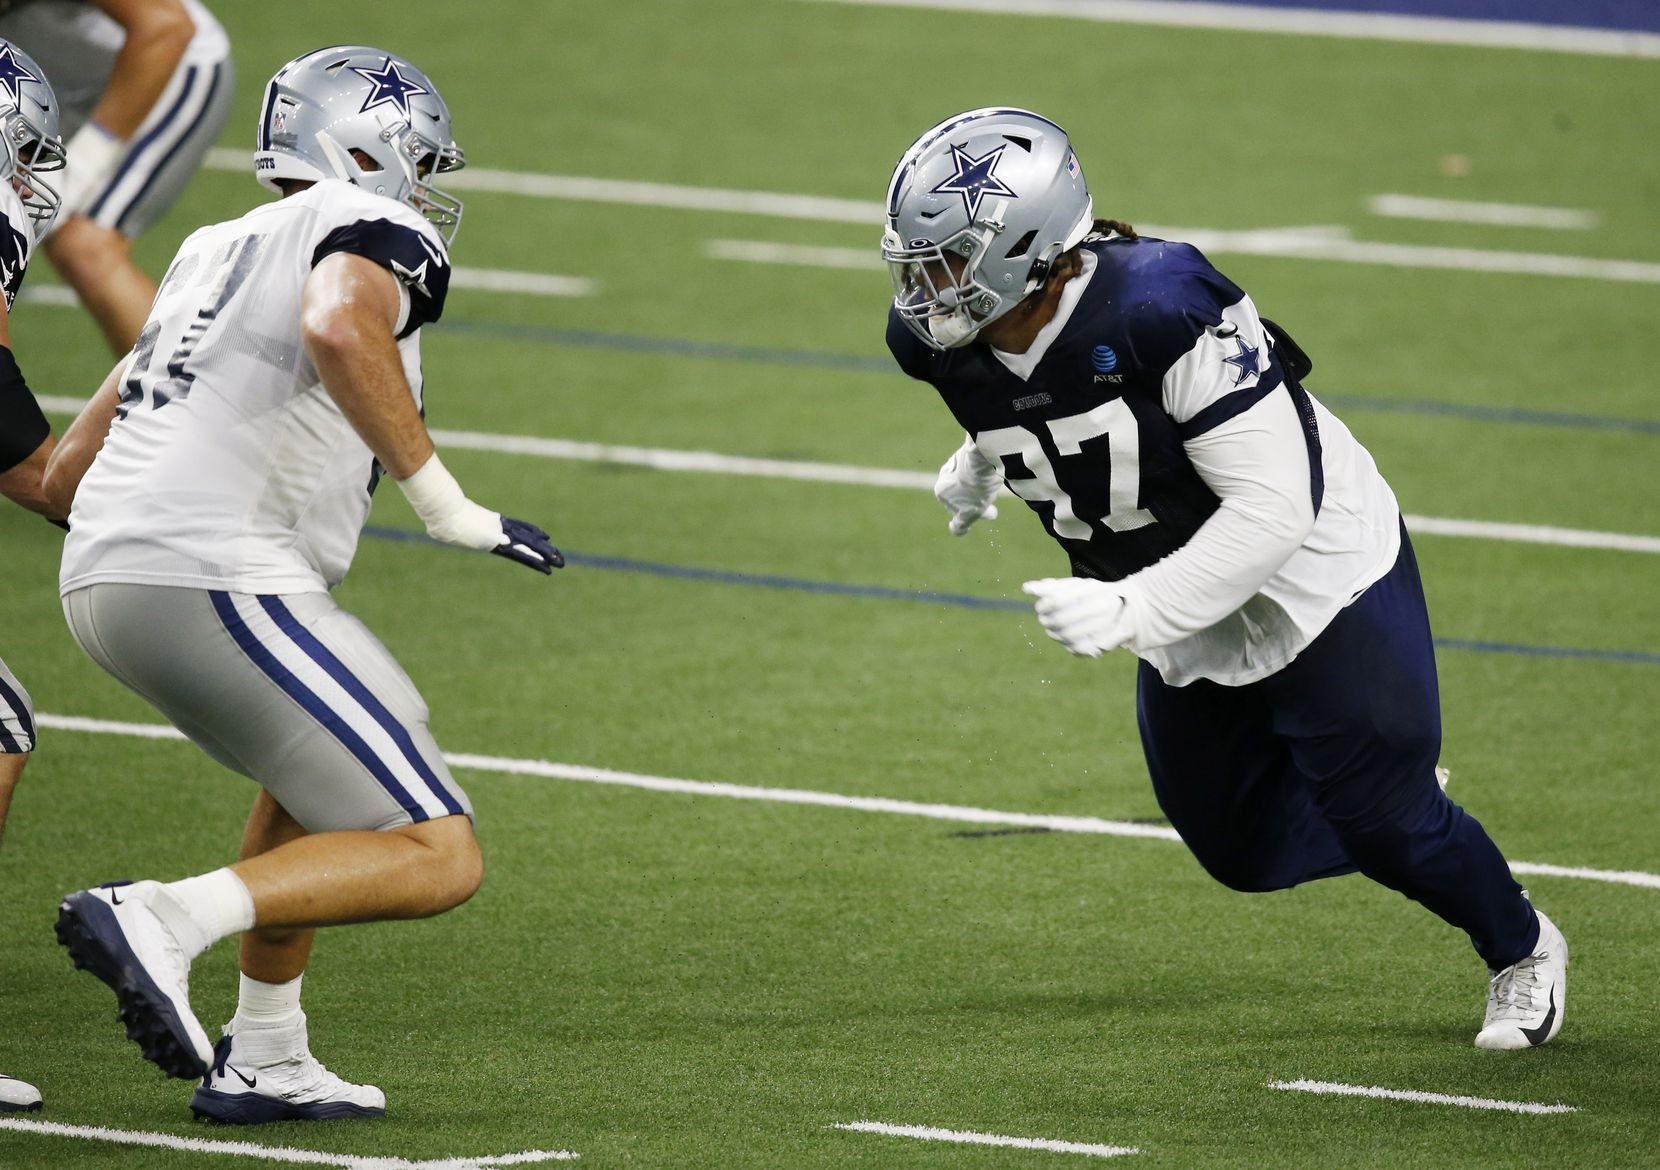 Dallas Cowboys defensive tackle Trysten Hill (97) attempts to pass Dallas Cowboys offensive tackle Wyatt Miller (67) after the snap during training camp inside the Ford Center at the Dallas Cowboys headquarters at The Star in Frisco, Texas on Tuesday, August 18, 2020. (Vernon Bryant/The Dallas Morning News)